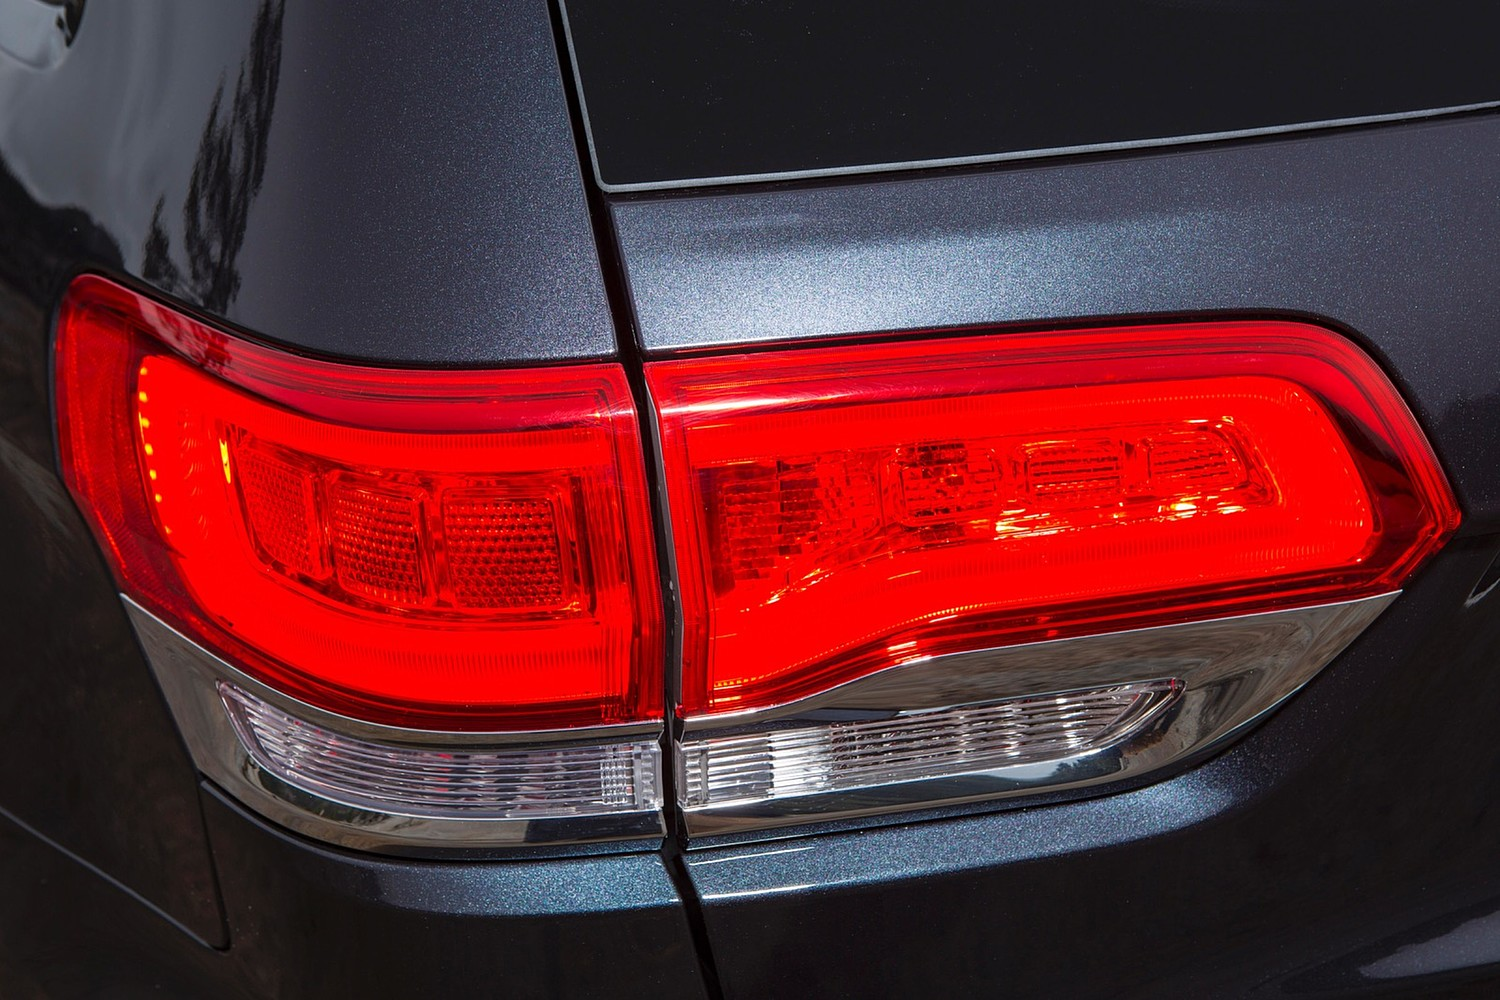 Jeep Grand Cherokee Limited 4dr SUV Tail Lamp Detail (2015 model year shown)